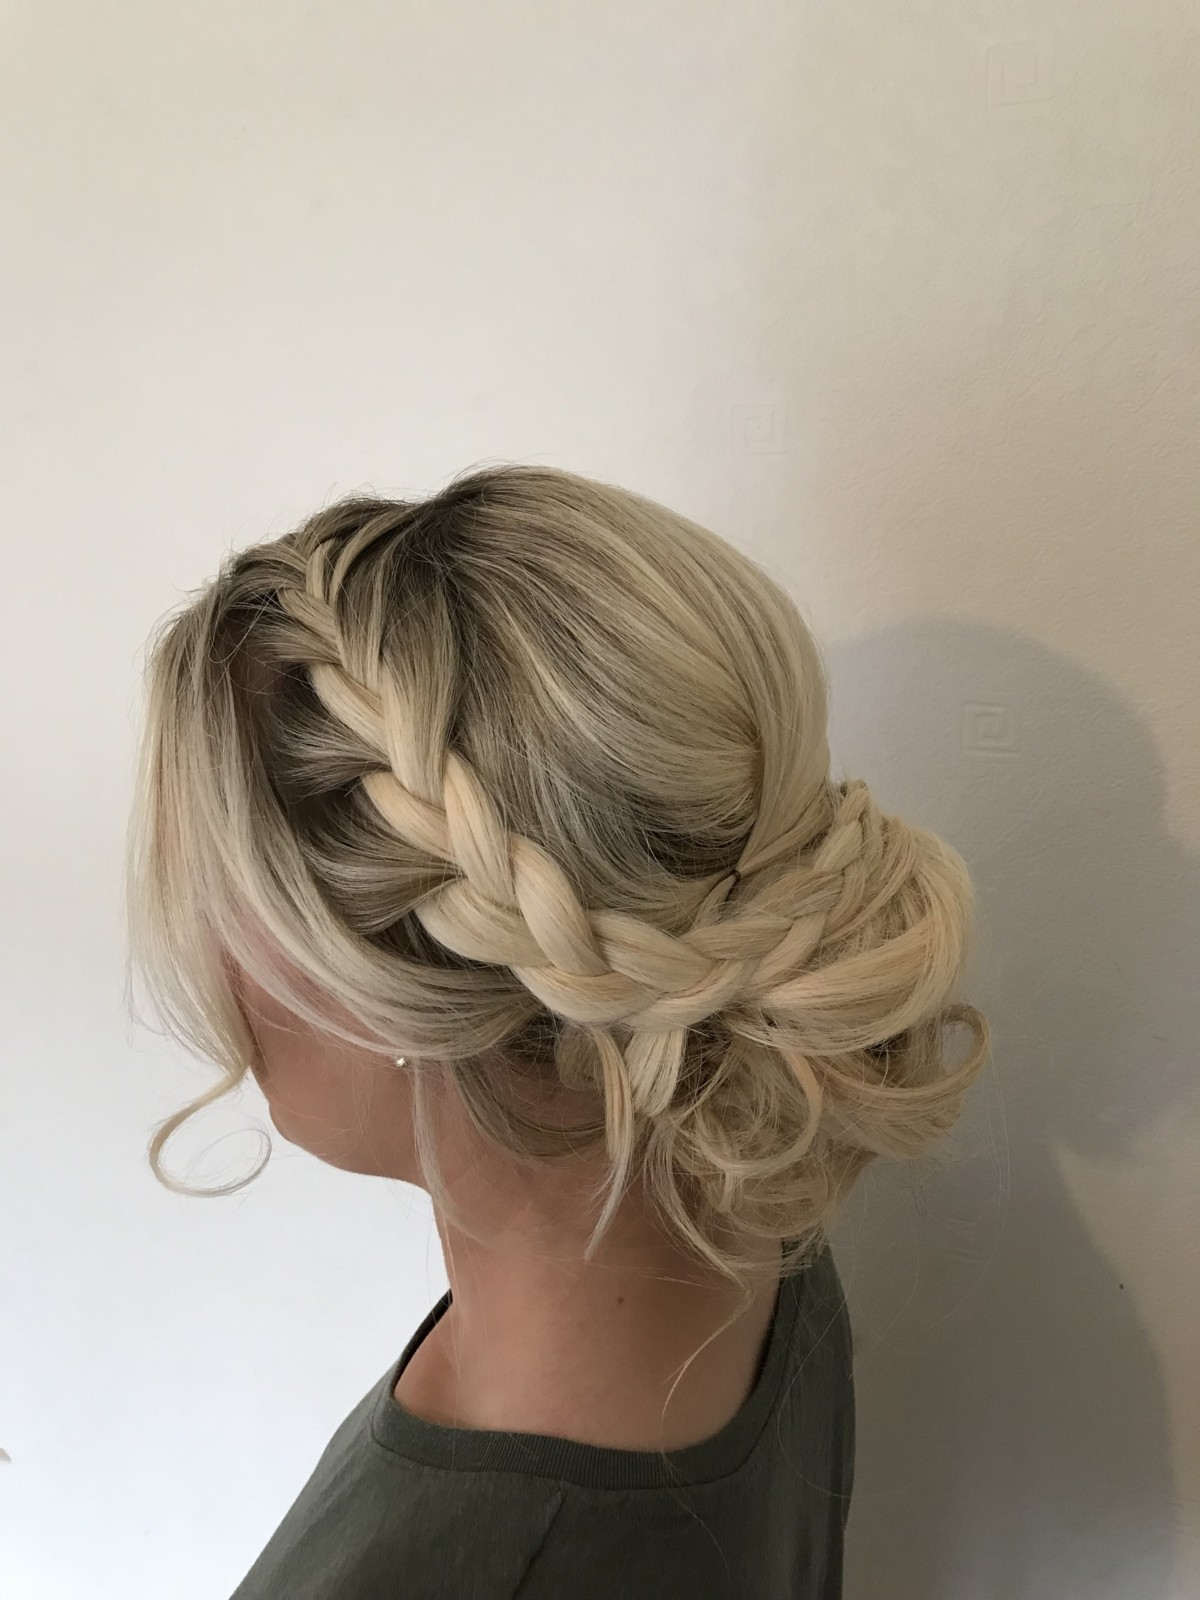 Hair And Make Up Artistry By Amber: Wedding Hair Specialist & Bridal Hairdresser For Surrey